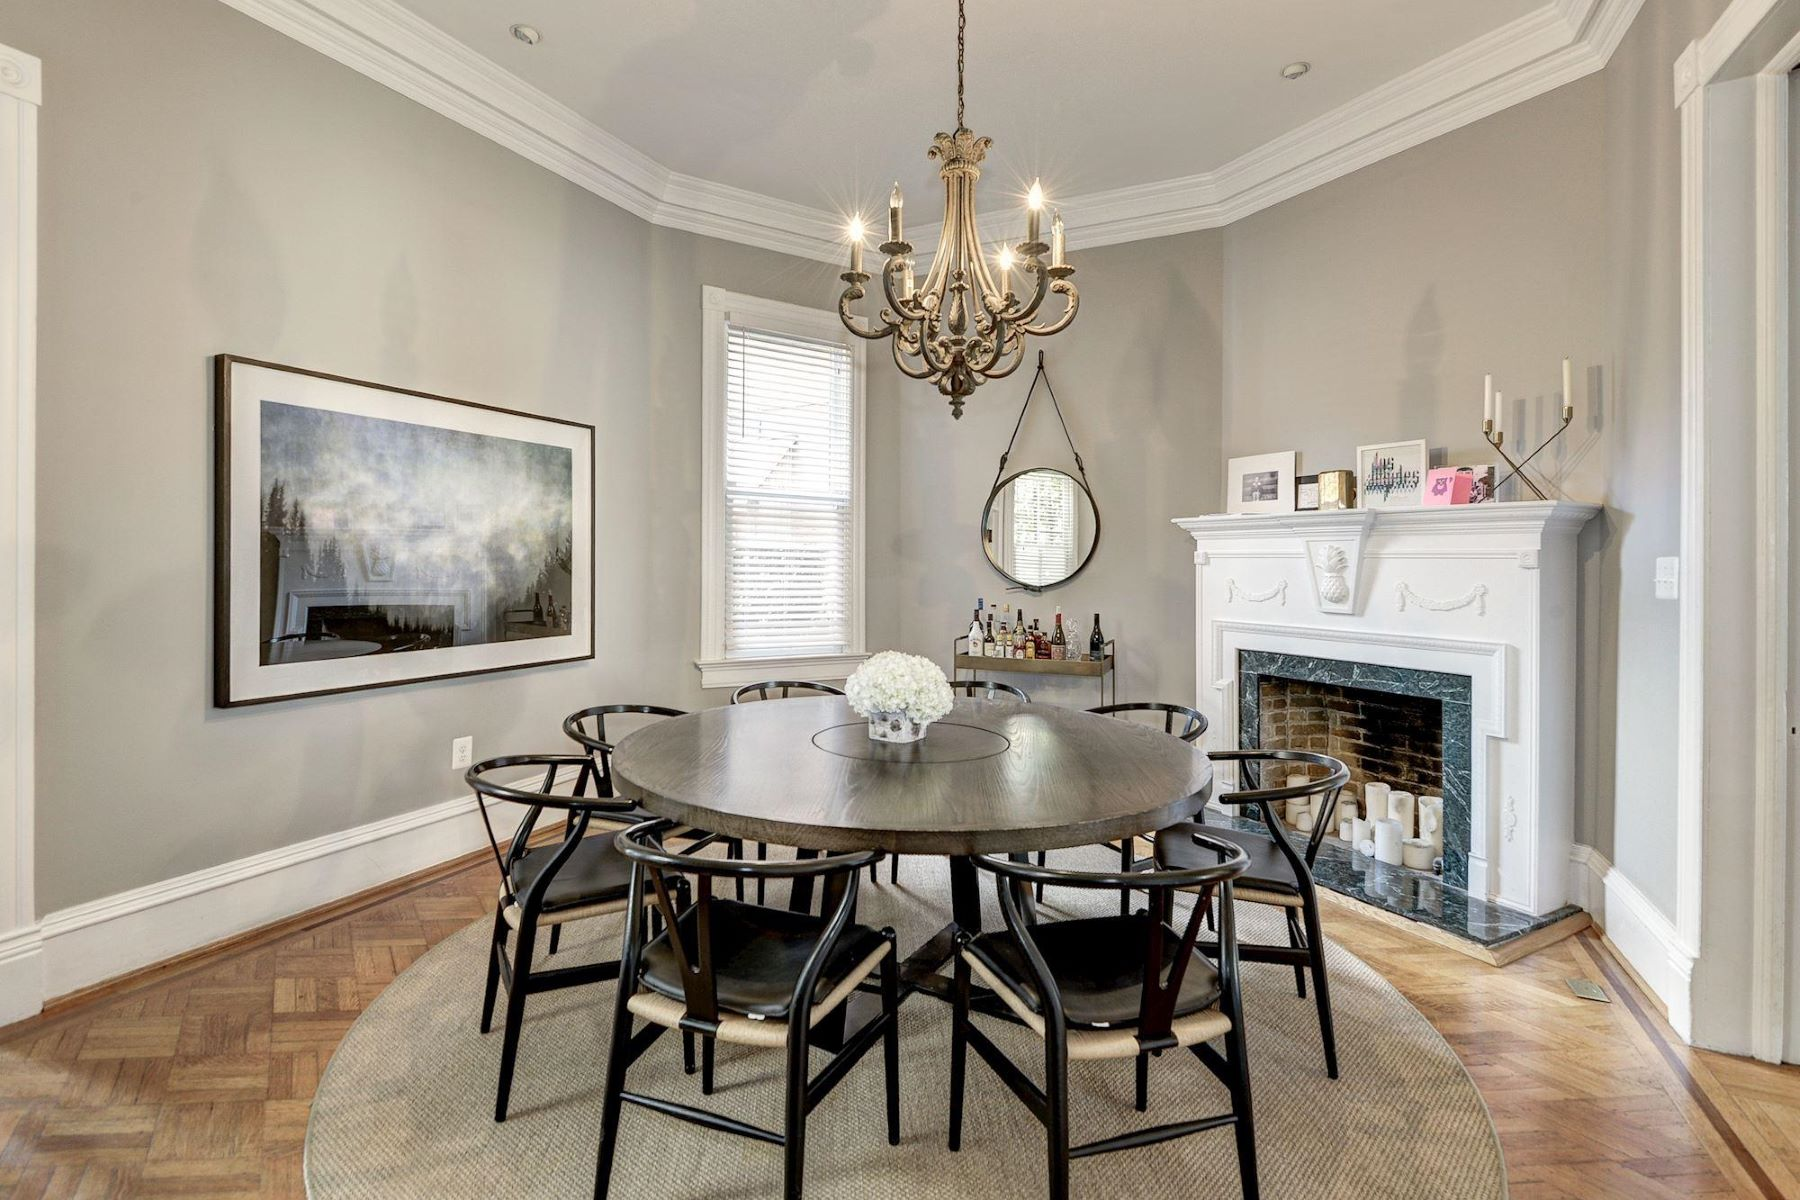 Additional photo for property listing at 1609 35th St Nw 1609 35th St Nw Washington, District Of Columbia 20007 United States